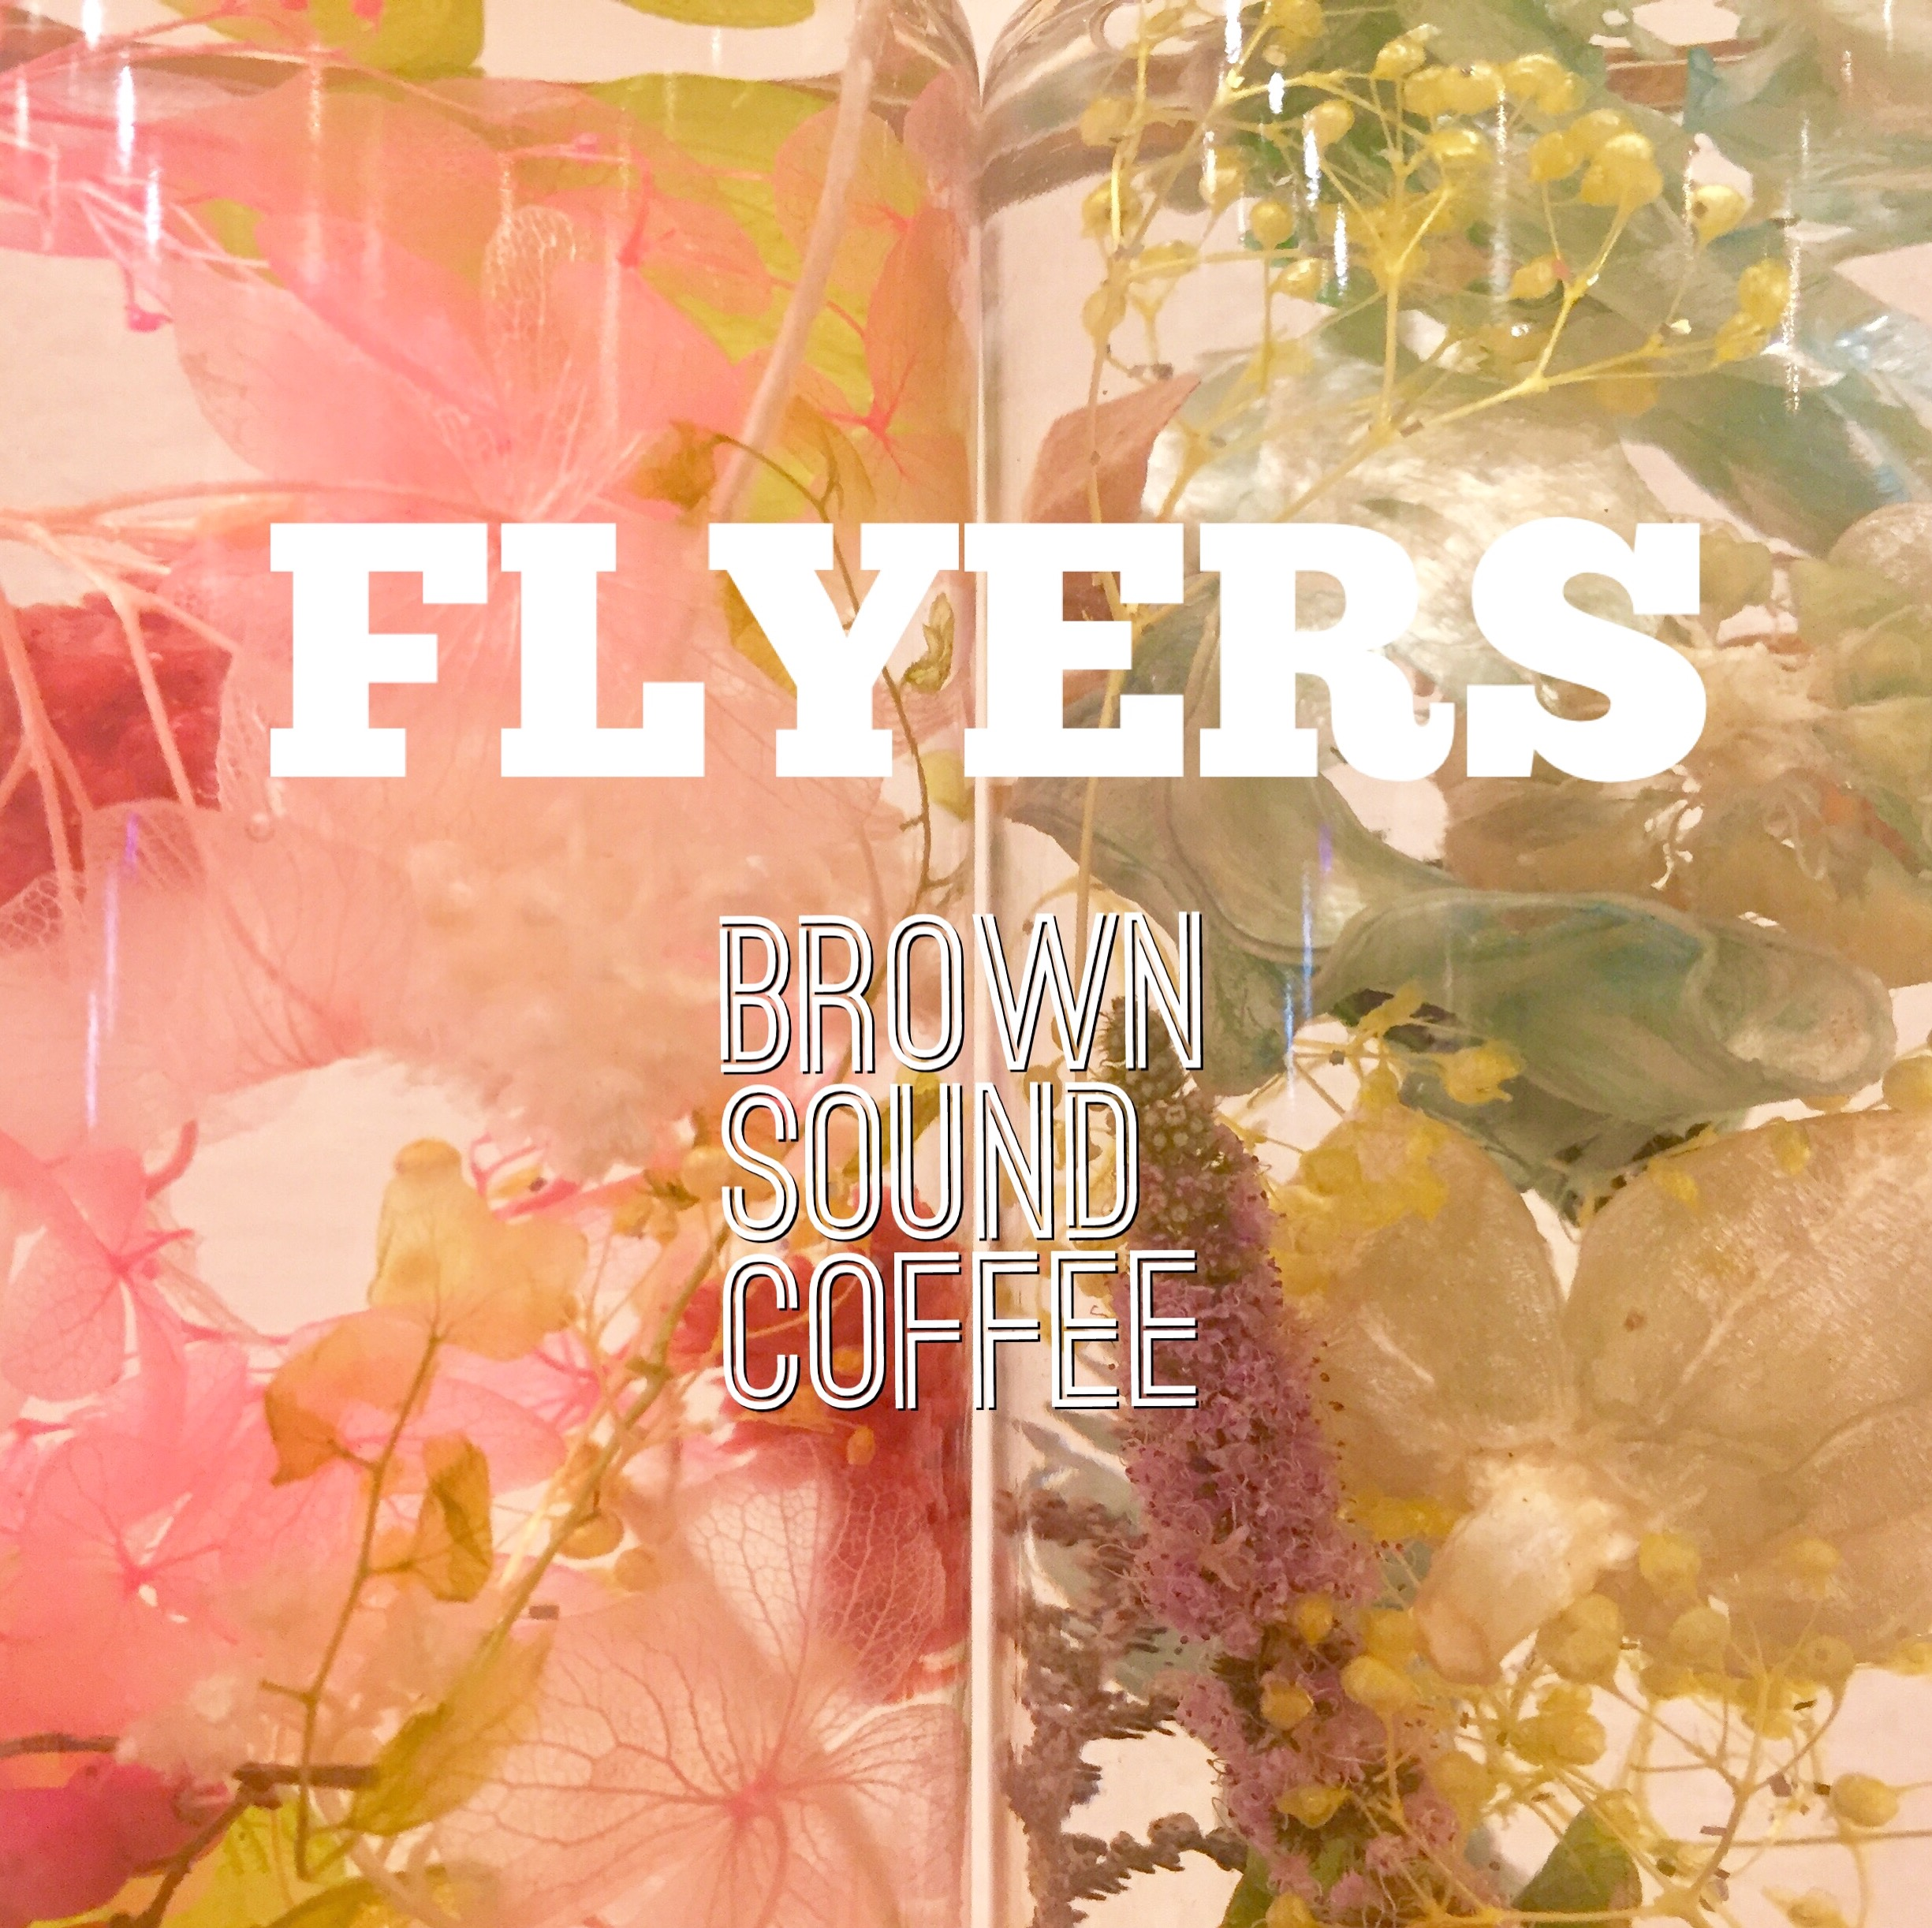 flyers work shop brown sound coffee